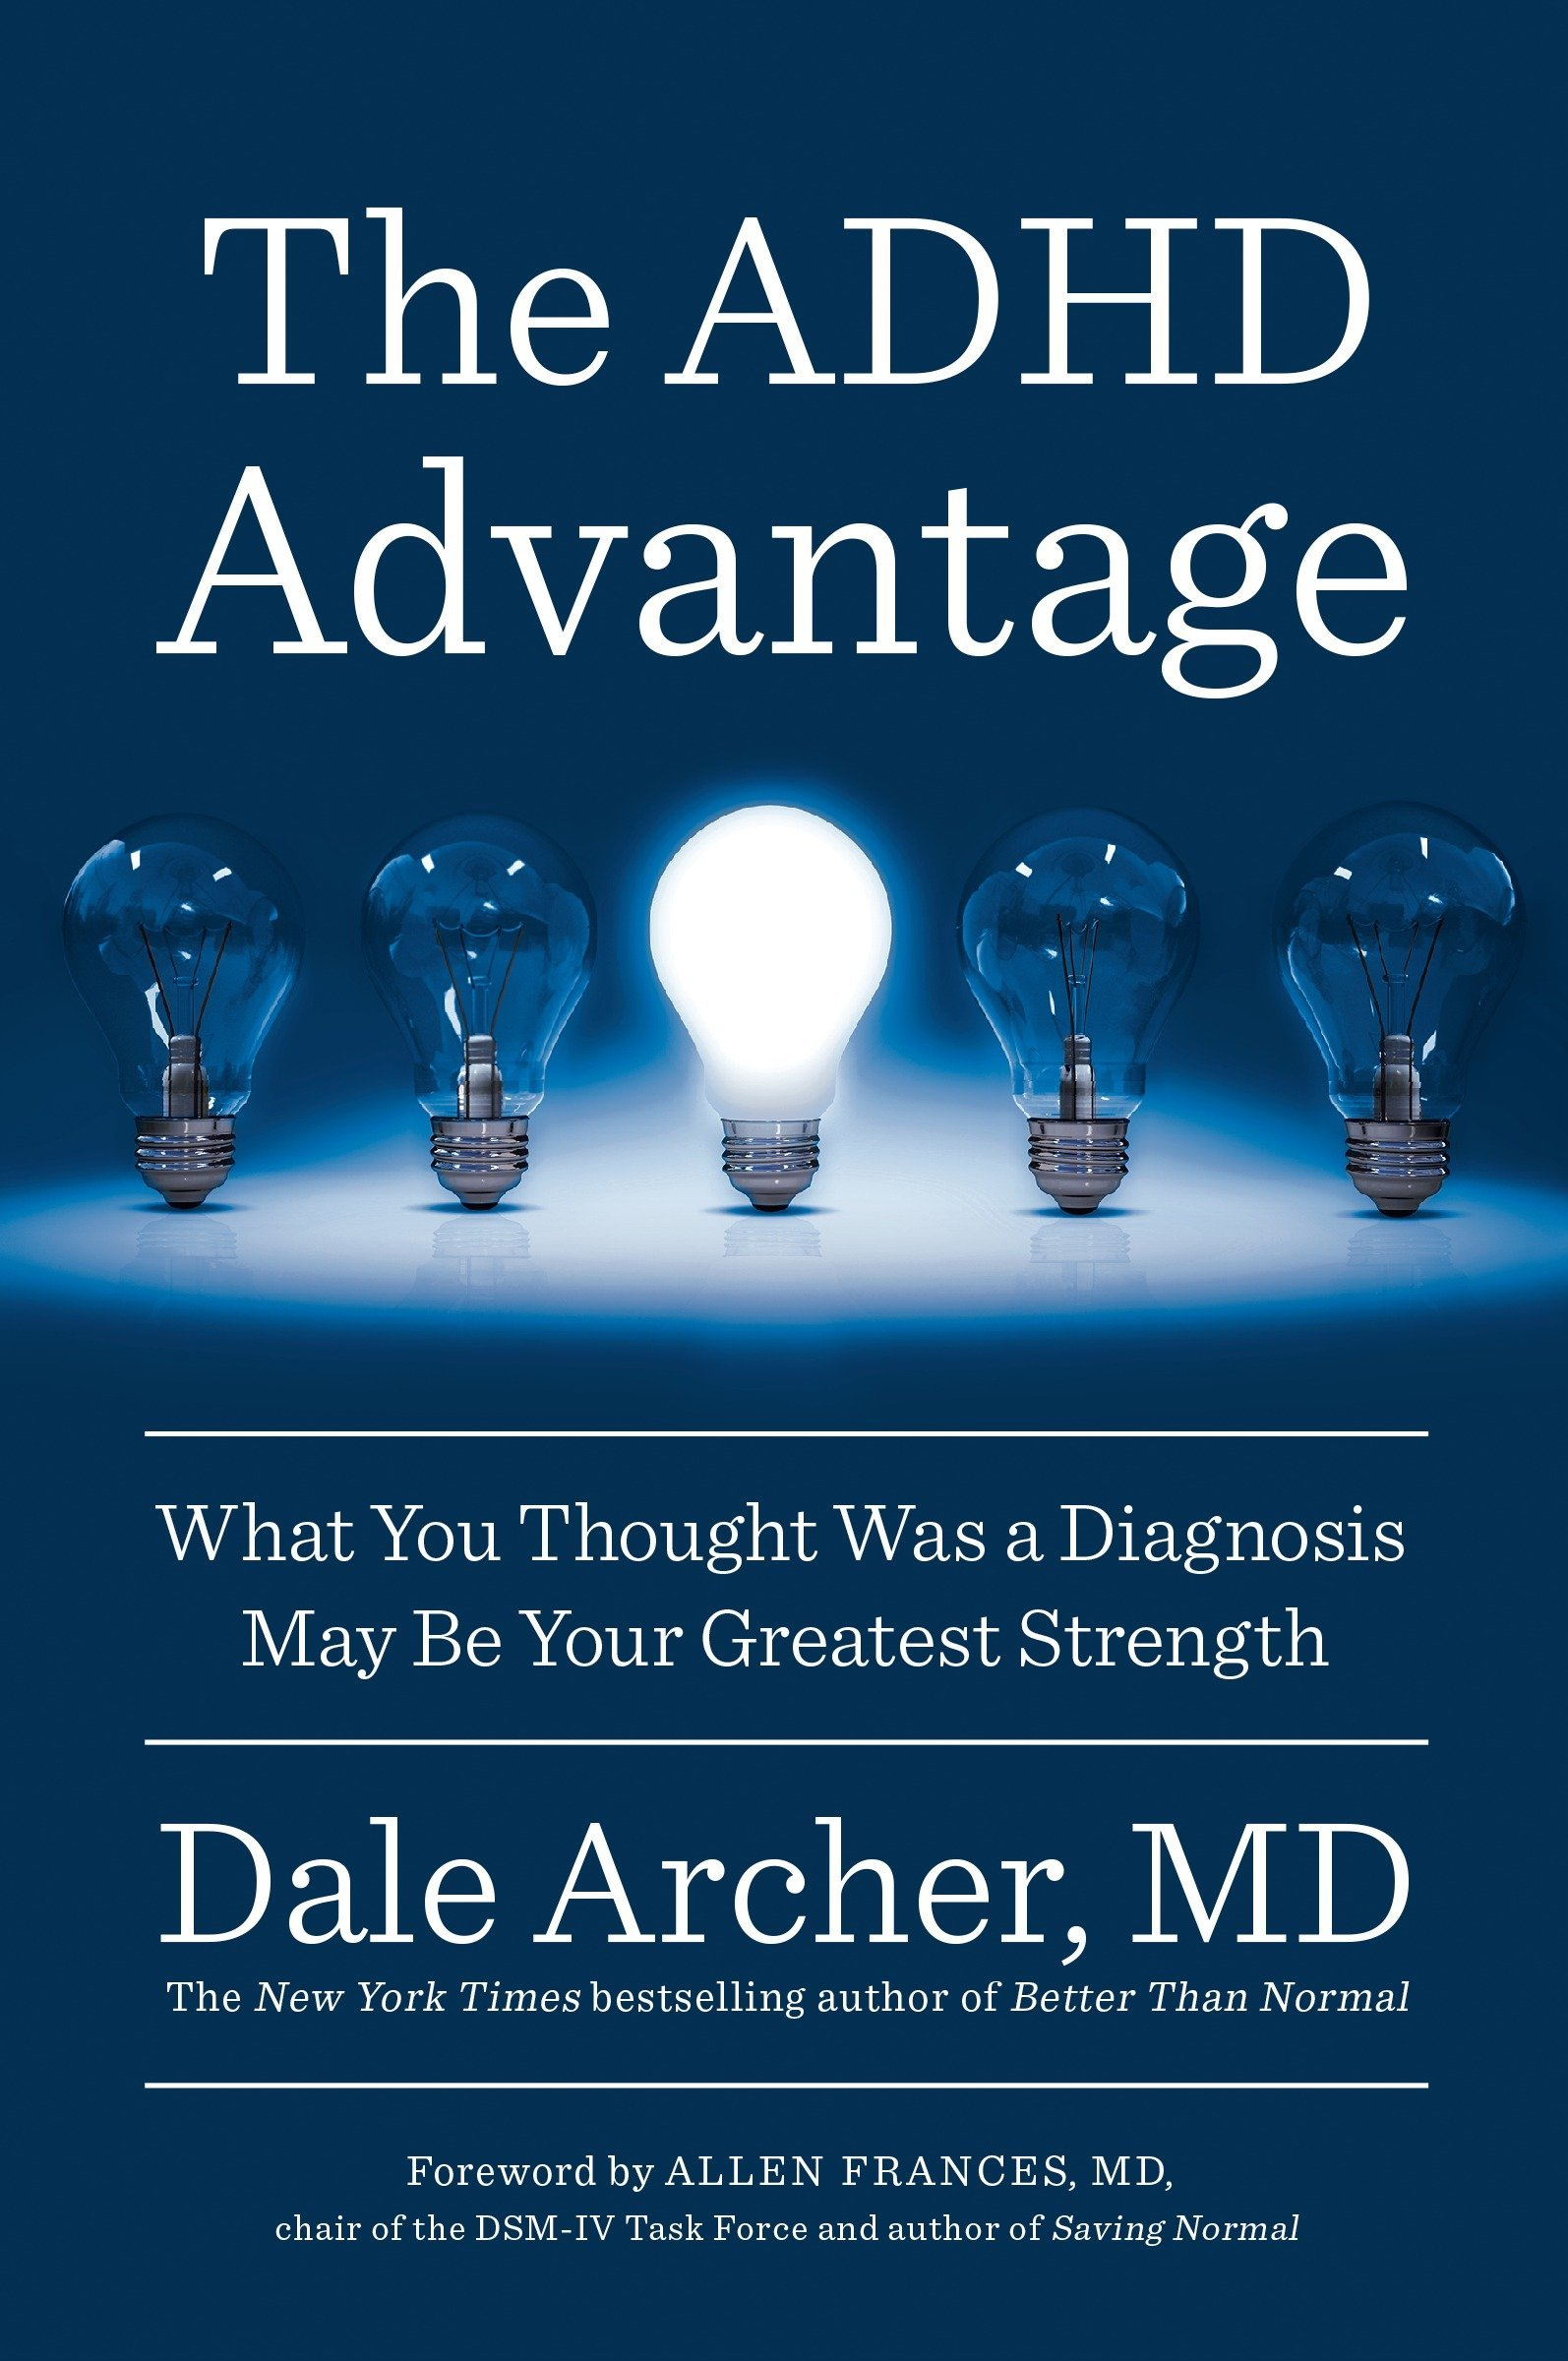 1f0c2a4f2ab The ADHD Advantage  What You Thought Was a Diagnosis May Be Your Greatest  Strength Paperback – August 9